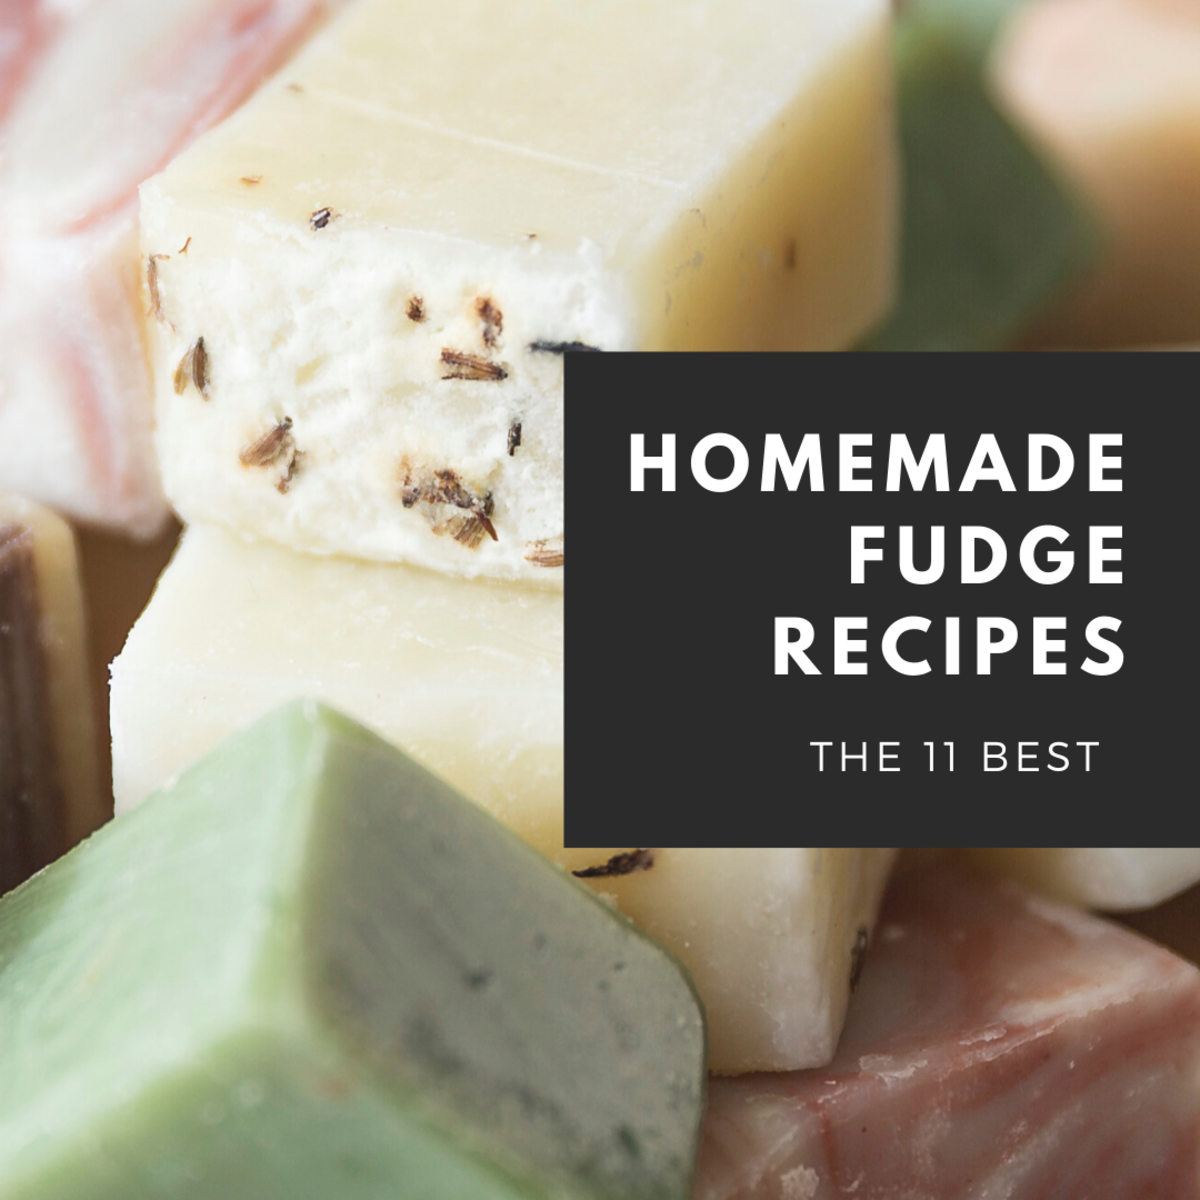 The 11 Best Homemade Fudge Recipes Ever